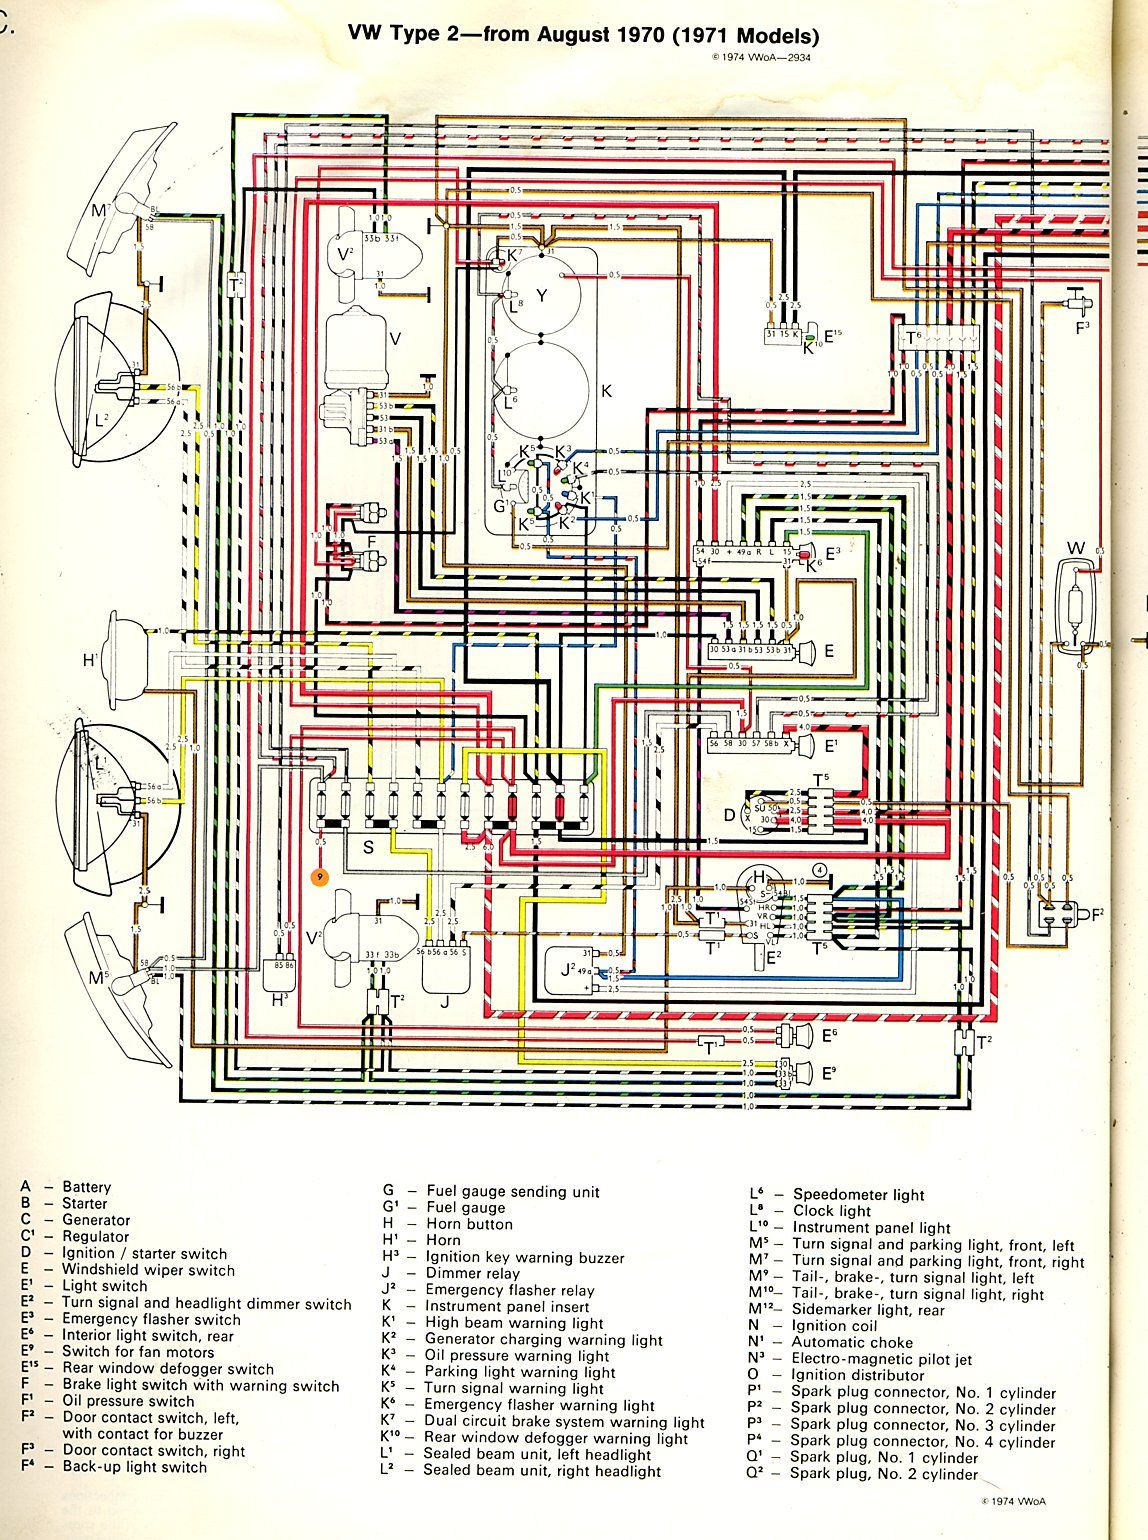 1971 Vw Bus Wiring Diagram Electrics T25 Starter Into A 72 Baywindow Forum Lawn Mower Schematic Thegoldenbug Com Stuff To Try Super Beetle